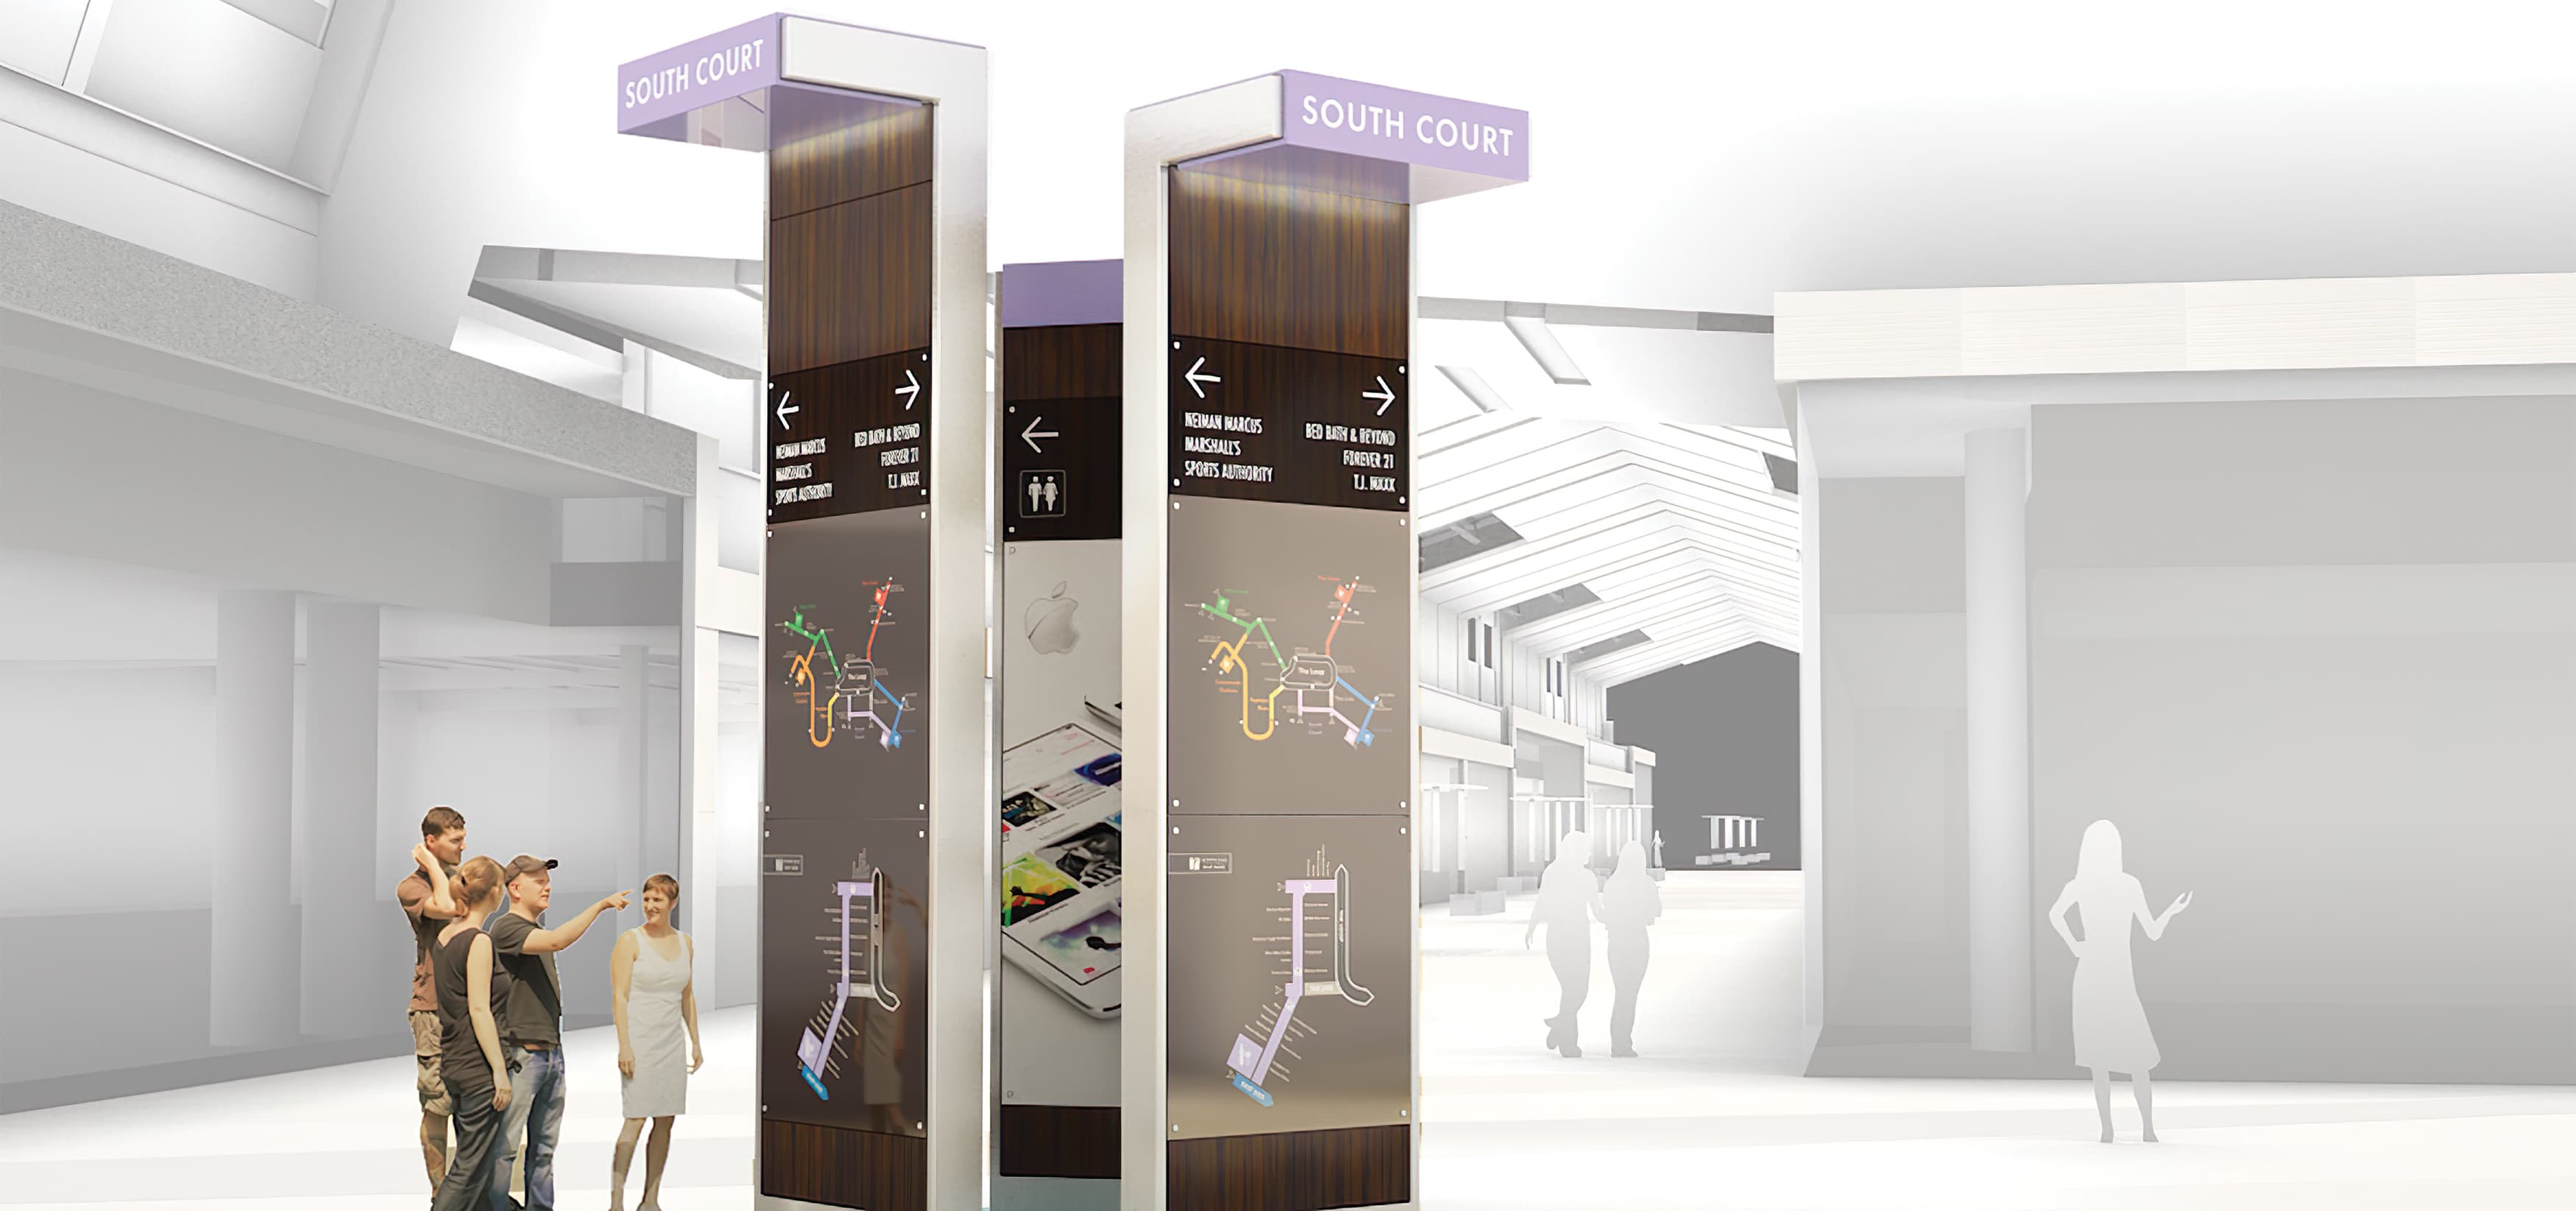 RSM Design worked to develop wayfinding signage, environmental graphics, and placemaking elements for Sawgrass Mills, a Simon Center located in Sunrise, Florida. Pedestrian Directory.